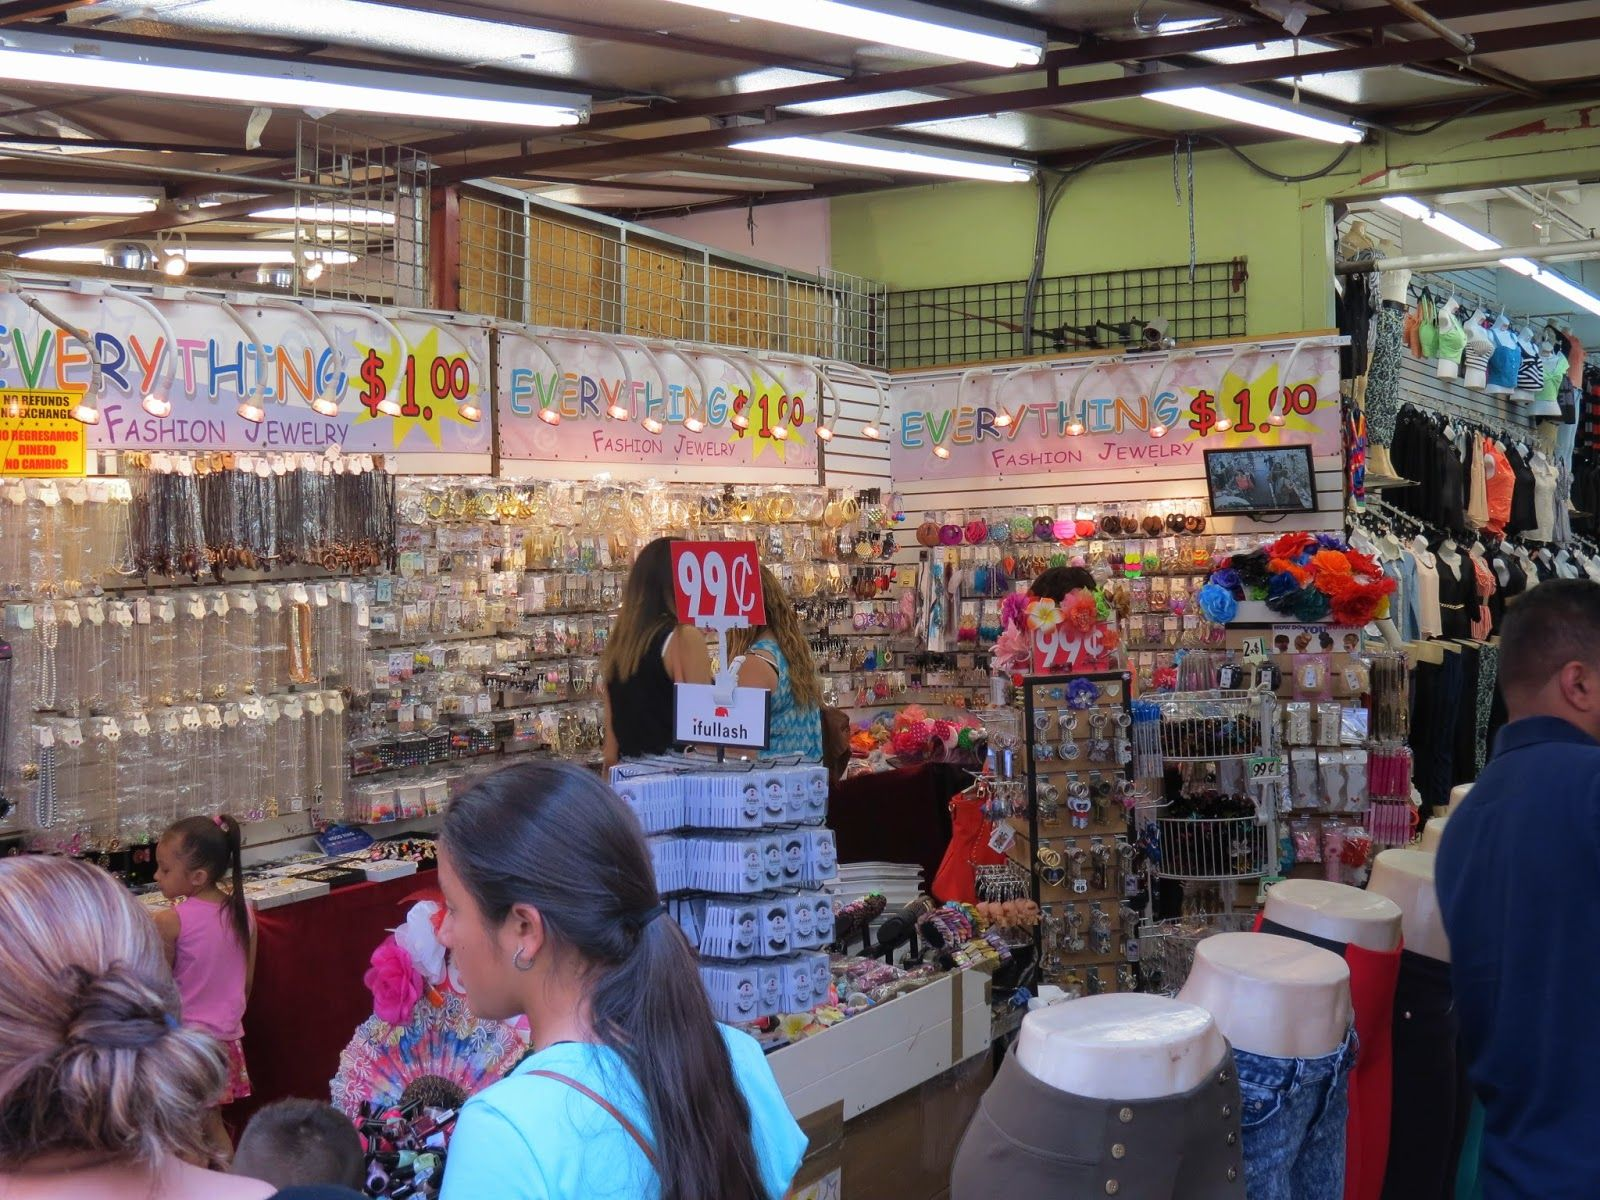 07ad706f13d The Santee Alley: Everything $1 Fashion Jewelry | Santee Alley ...